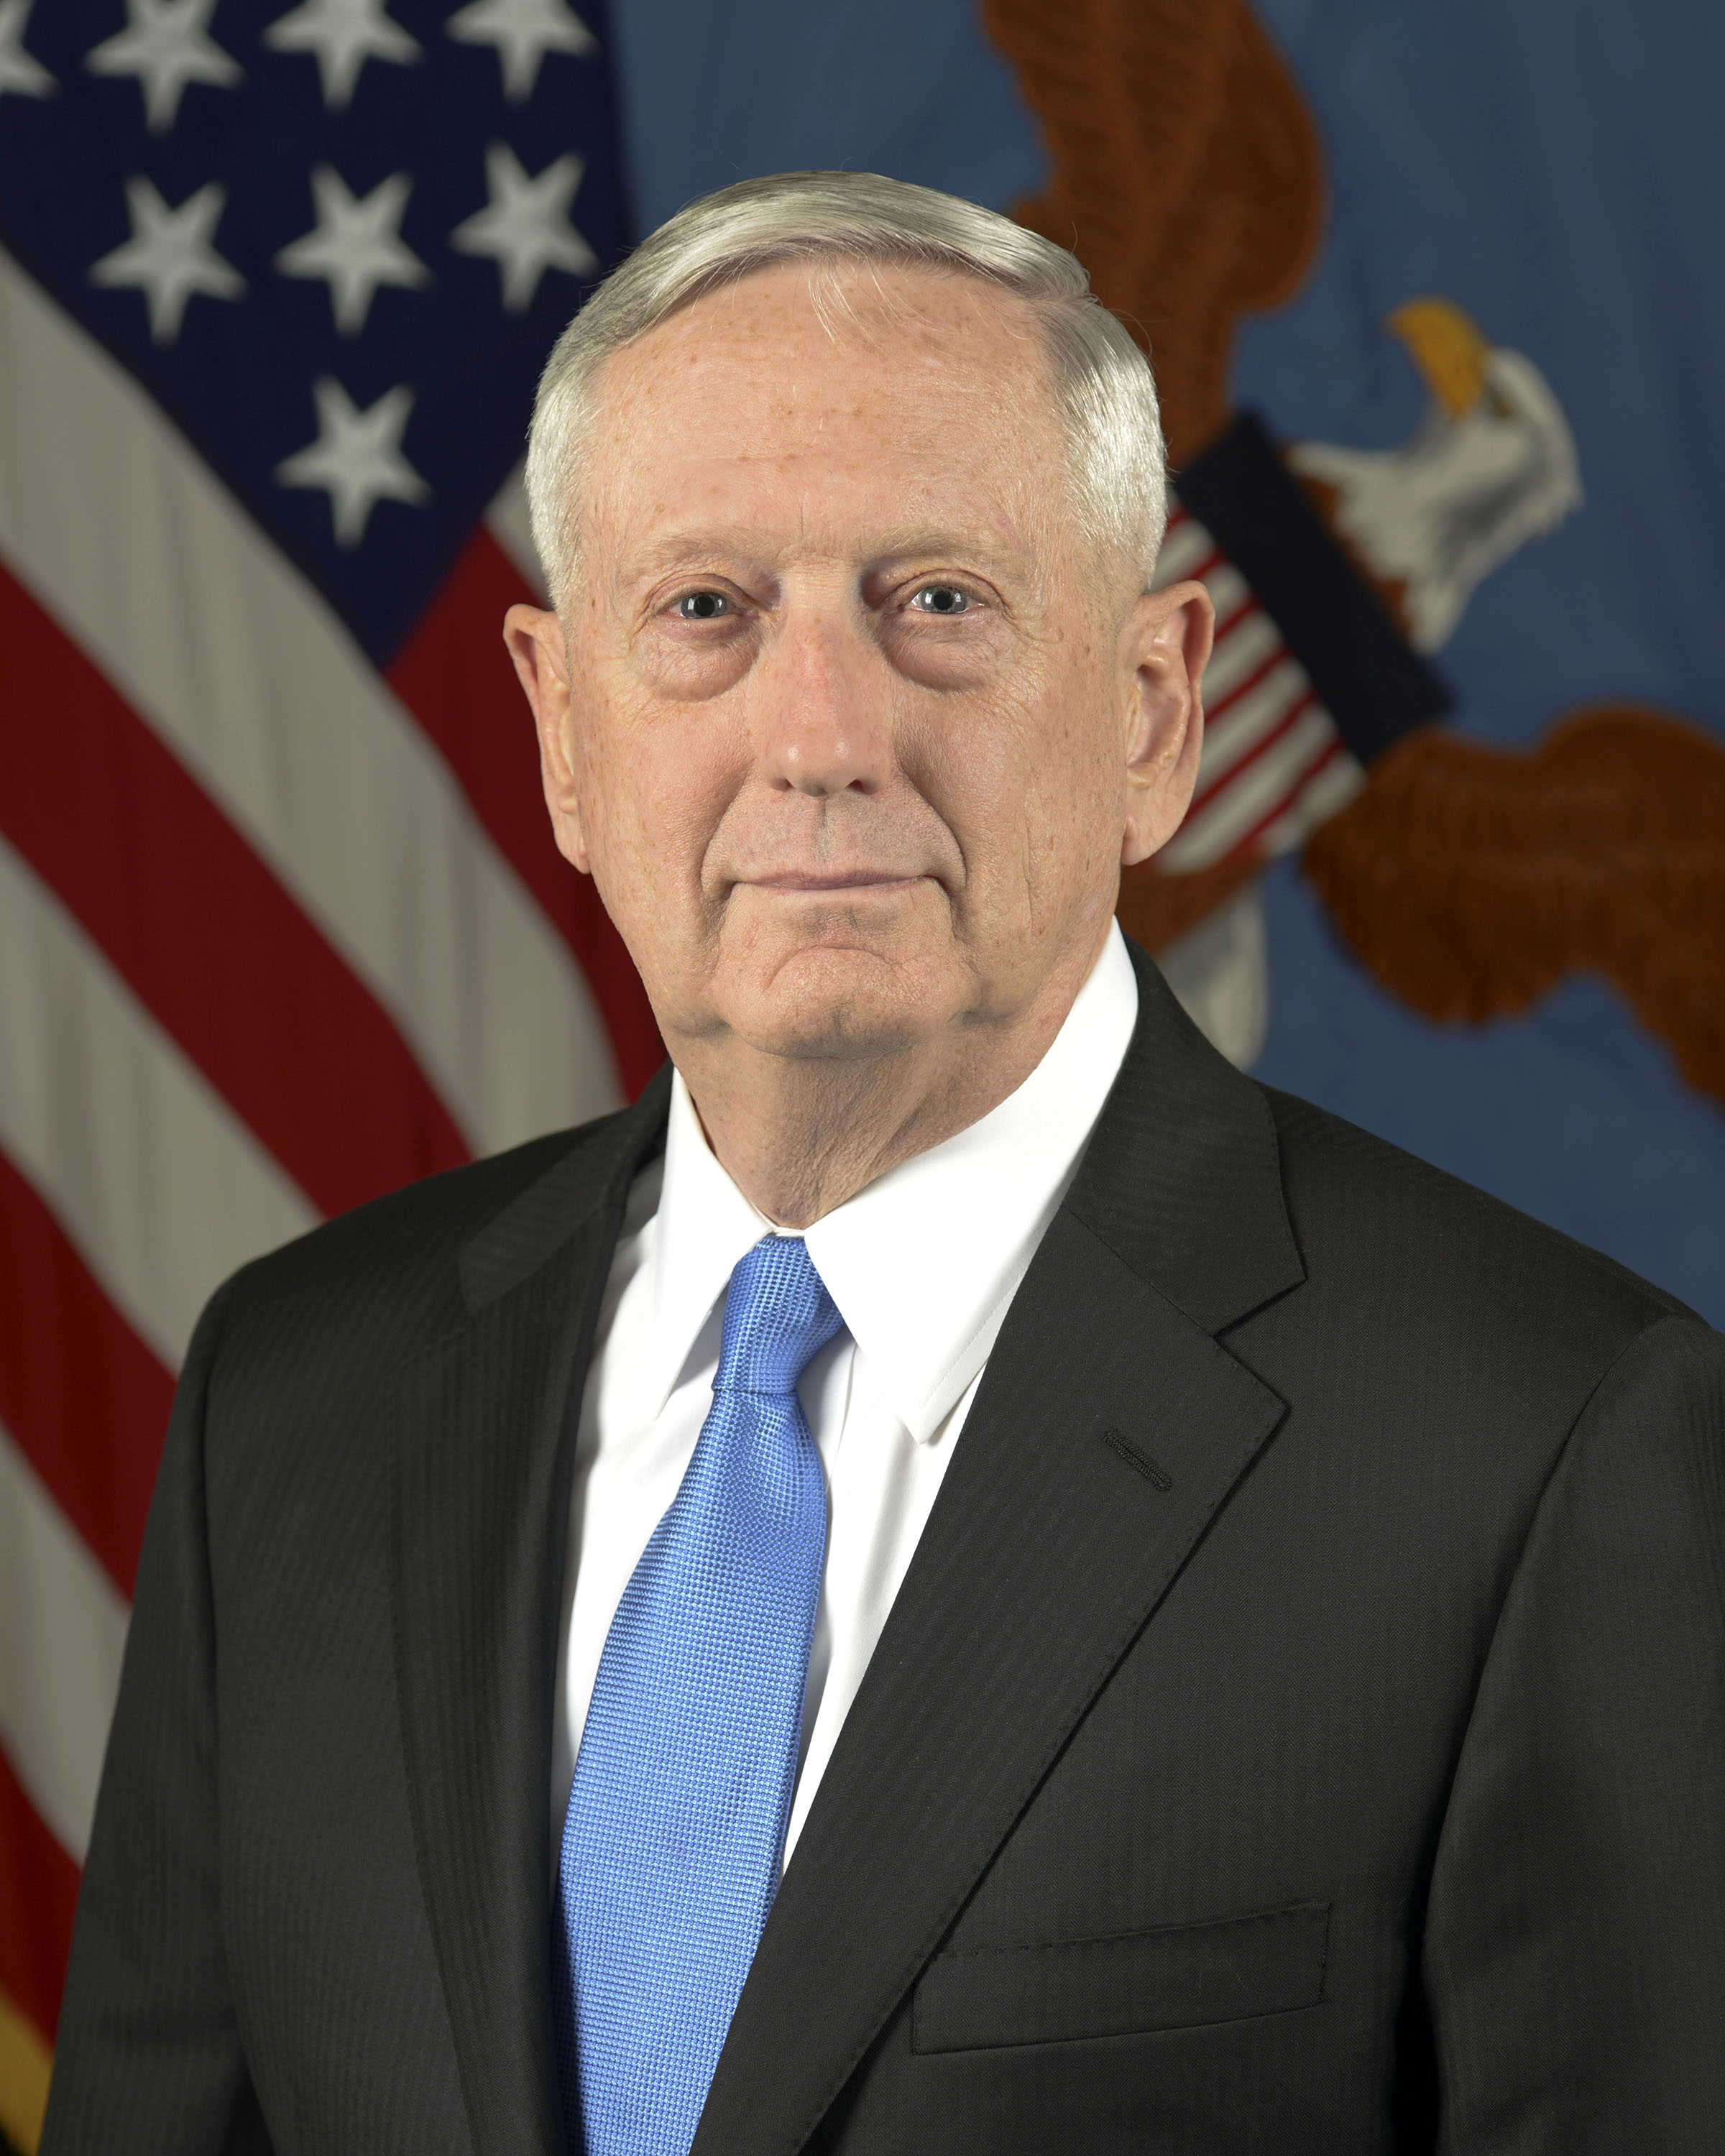 Secretary of Defense Mattis scheduled to give USAFA Class of '18  commencement address > United States Air Force Academy > News Display